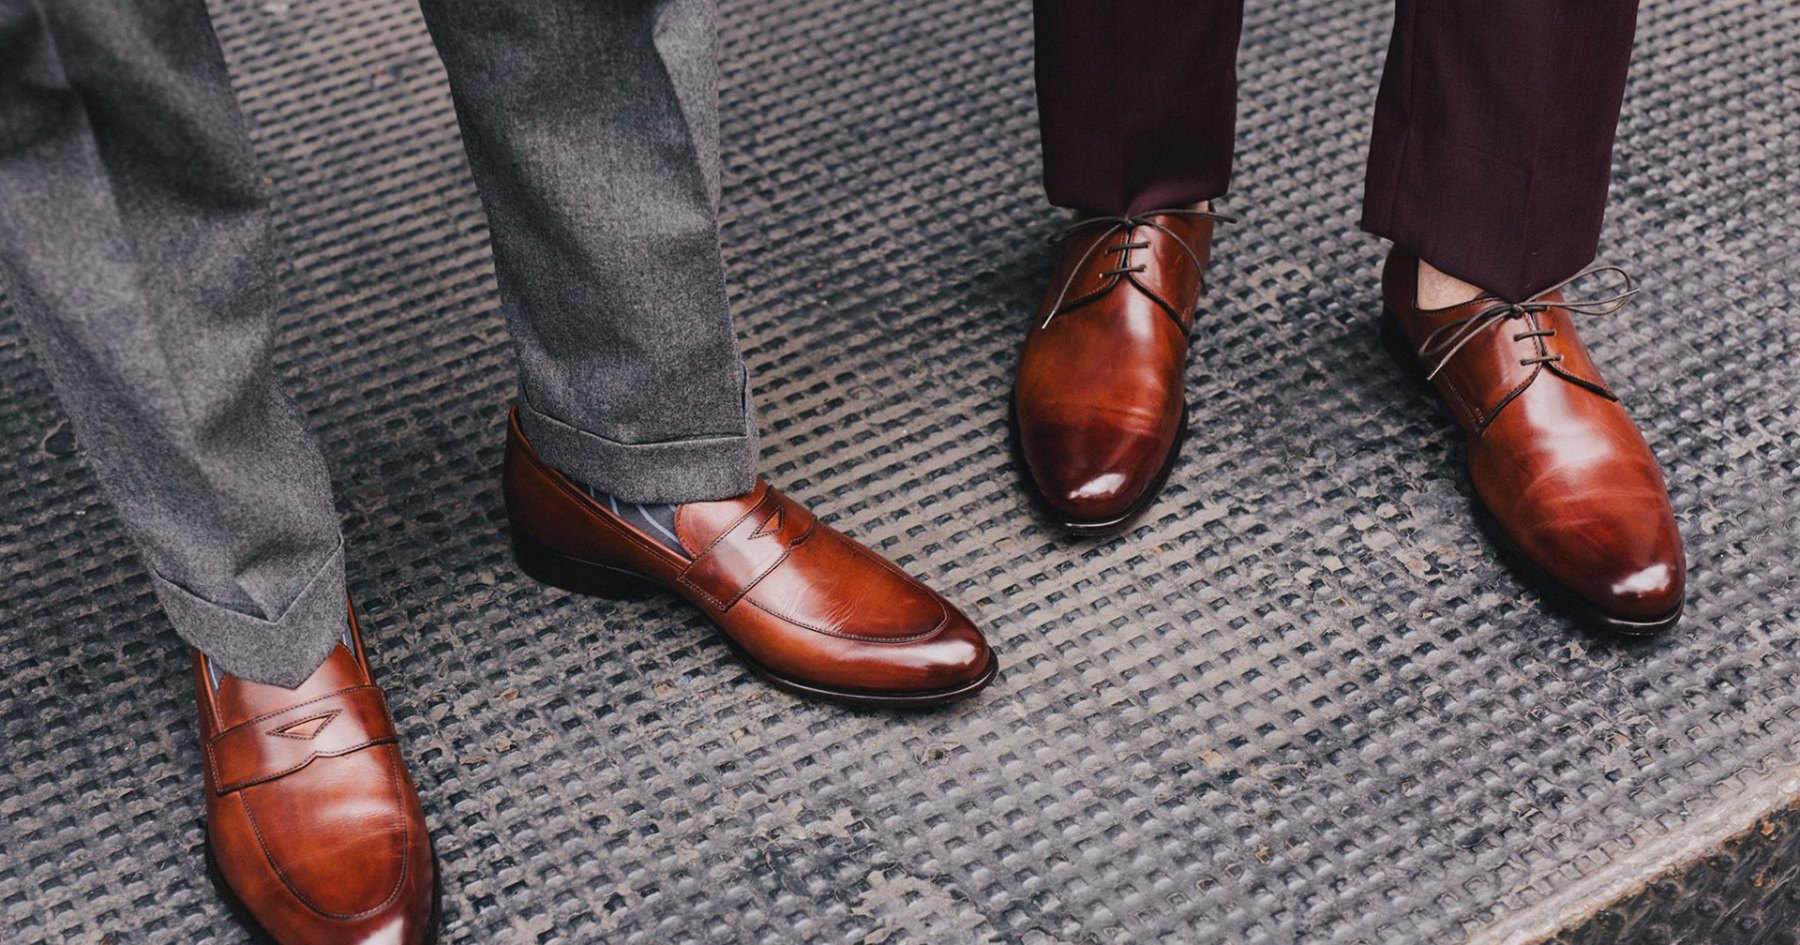 c646ce7aeb2 Paul Evans Mens Shoes Opens First New York Store - InsideHook